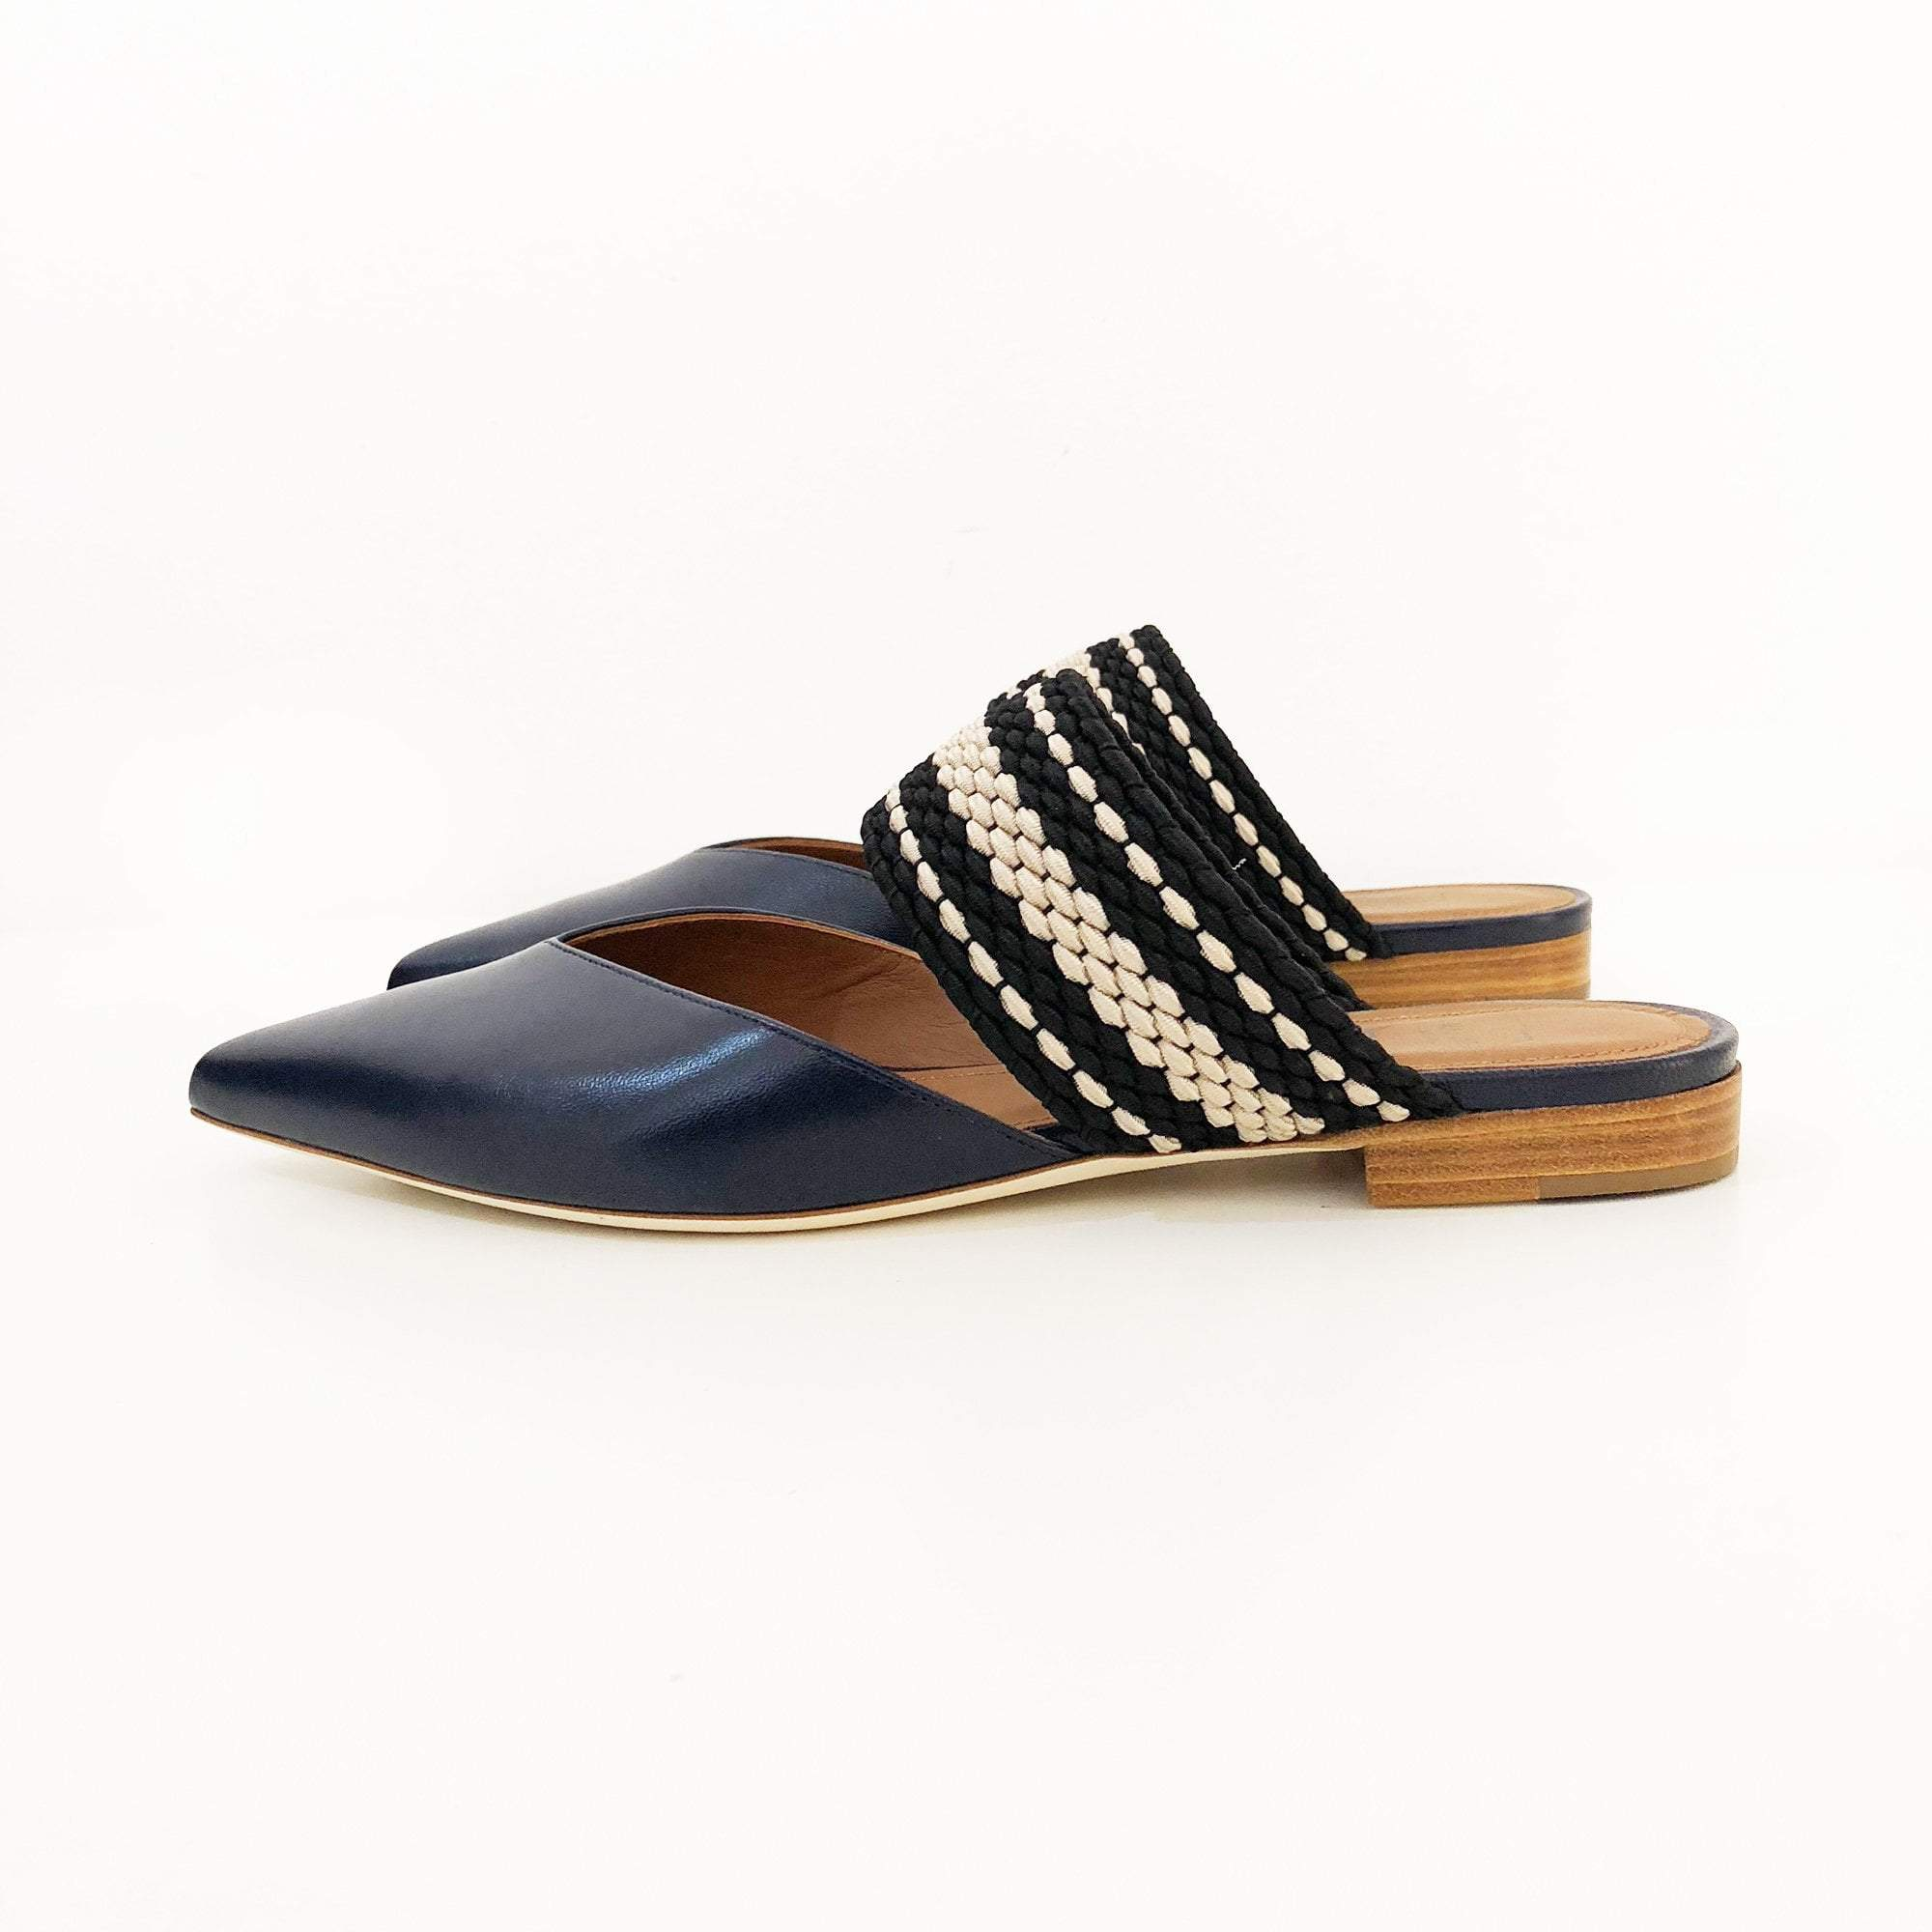 Malone Souliers Blue Flat Leather Mules